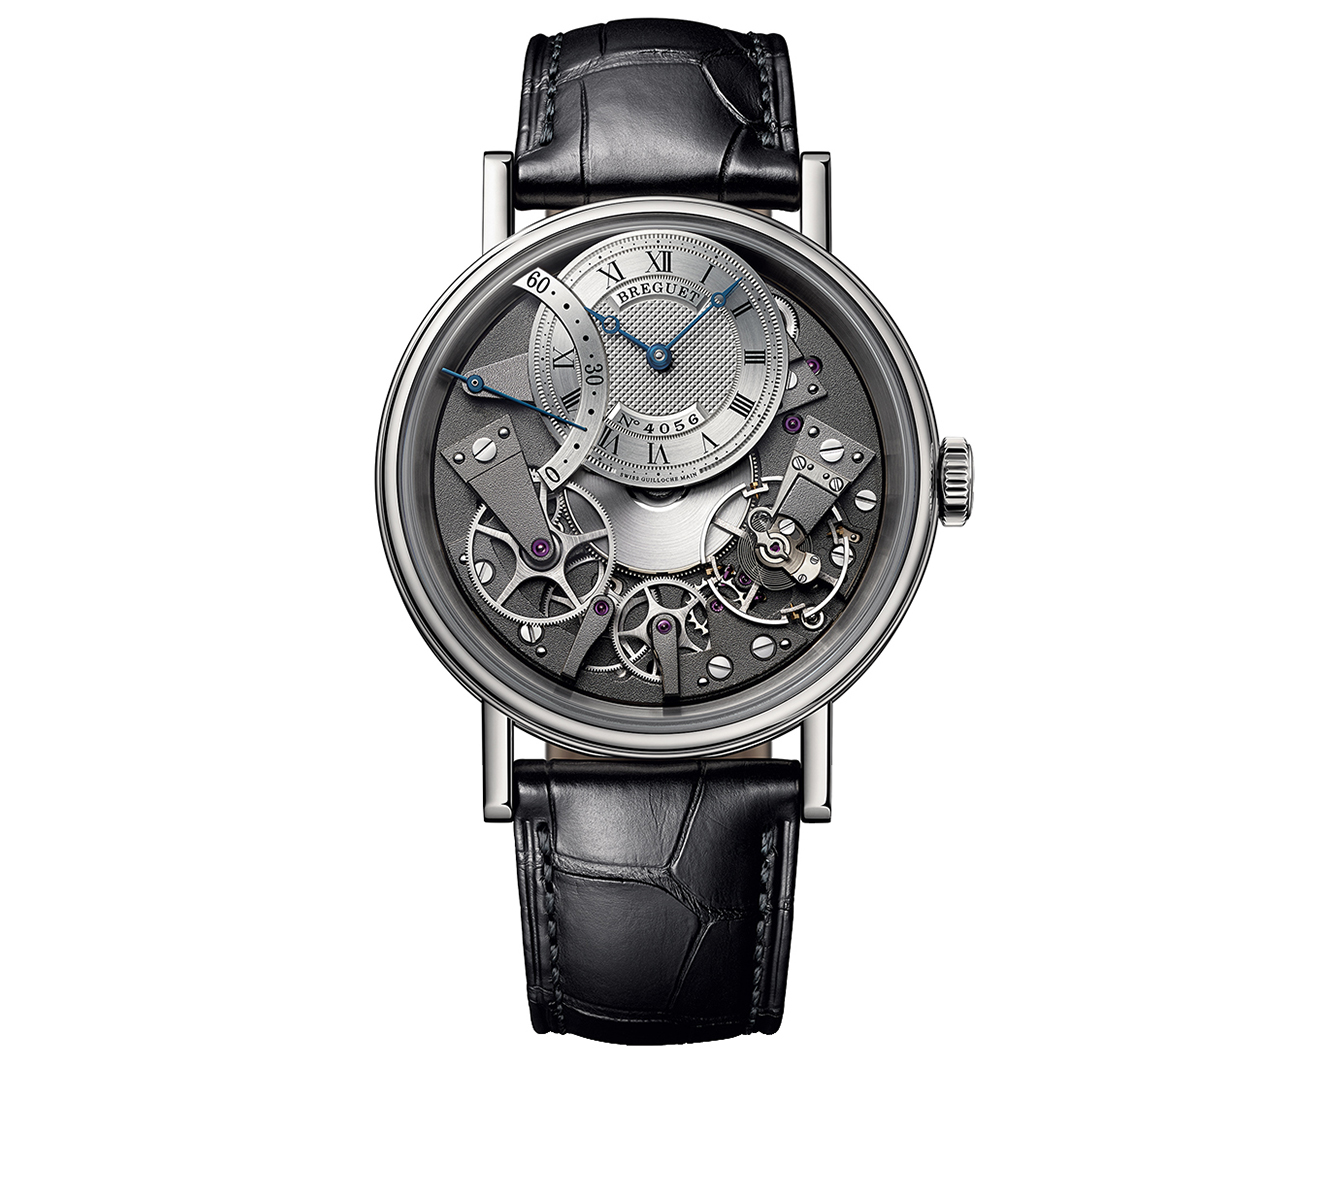 Часы Tradition Automatique Seconde Retrograde Breguet Tradition 7097BB G1 9WU - фото 1 – Mercury